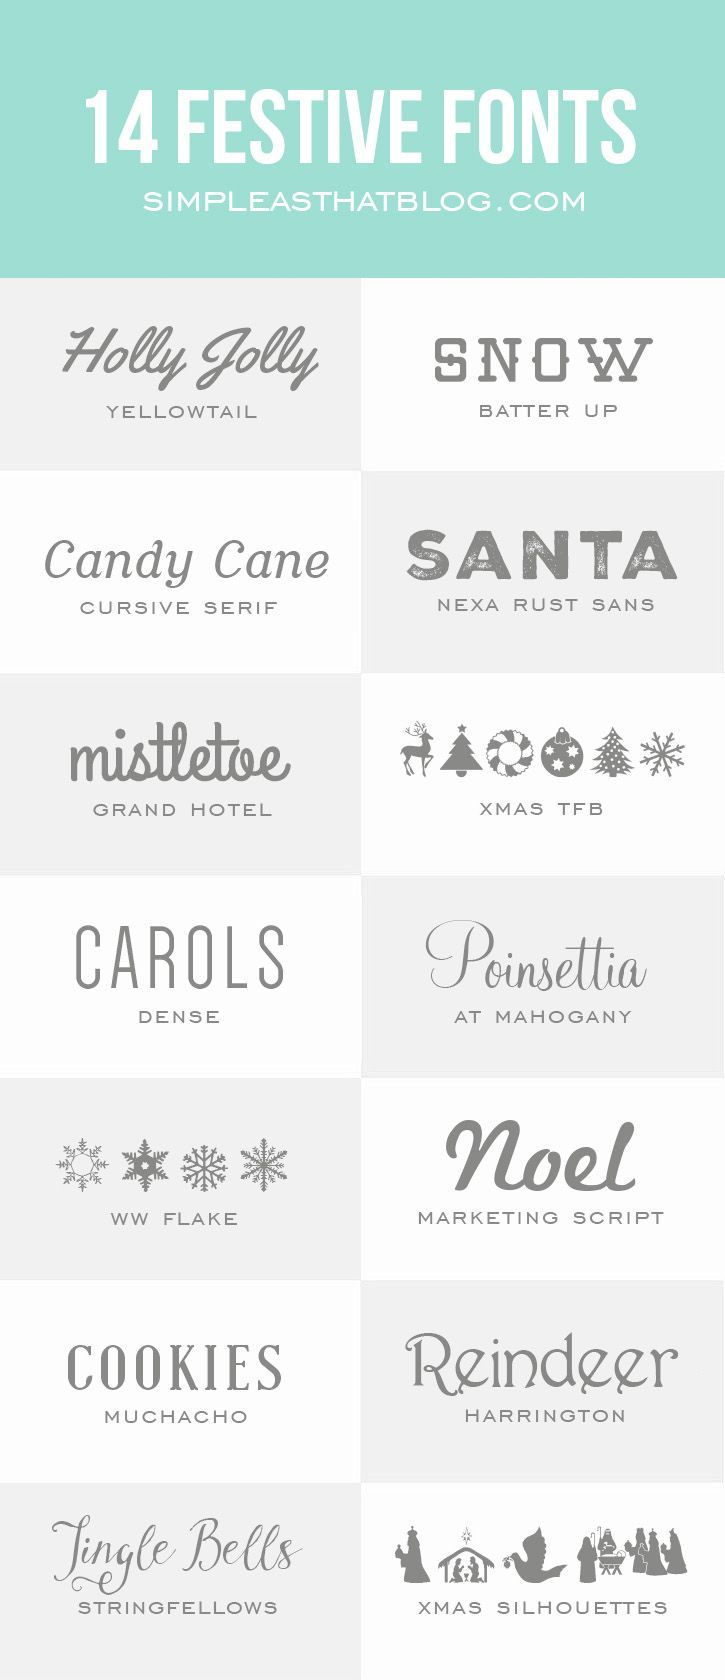 14 Festive Fonts for the Holidays | simpleasthatblog.com #font #holidays #christmas (scheduled via http://www.tailwindapp.com?utm_source=pinterest&utm_medium=twpin&utm_content=post736863&utm_campaign=scheduler_attribution)